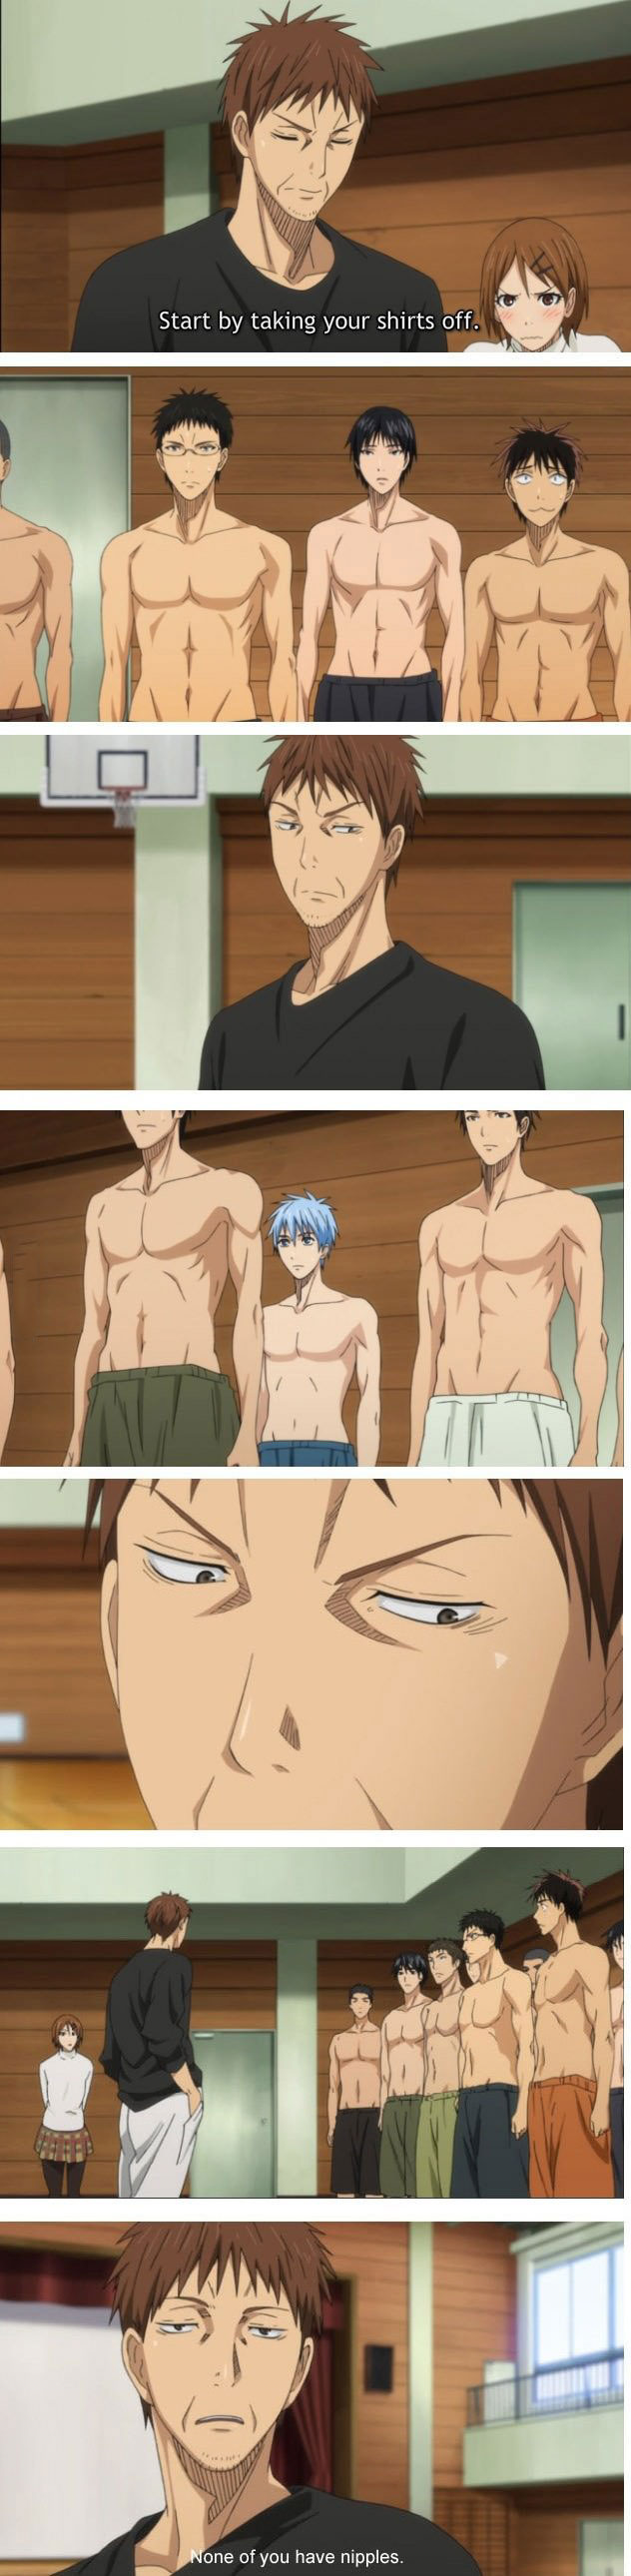 start by taking your shirts off, none of you have nipples, anime logic